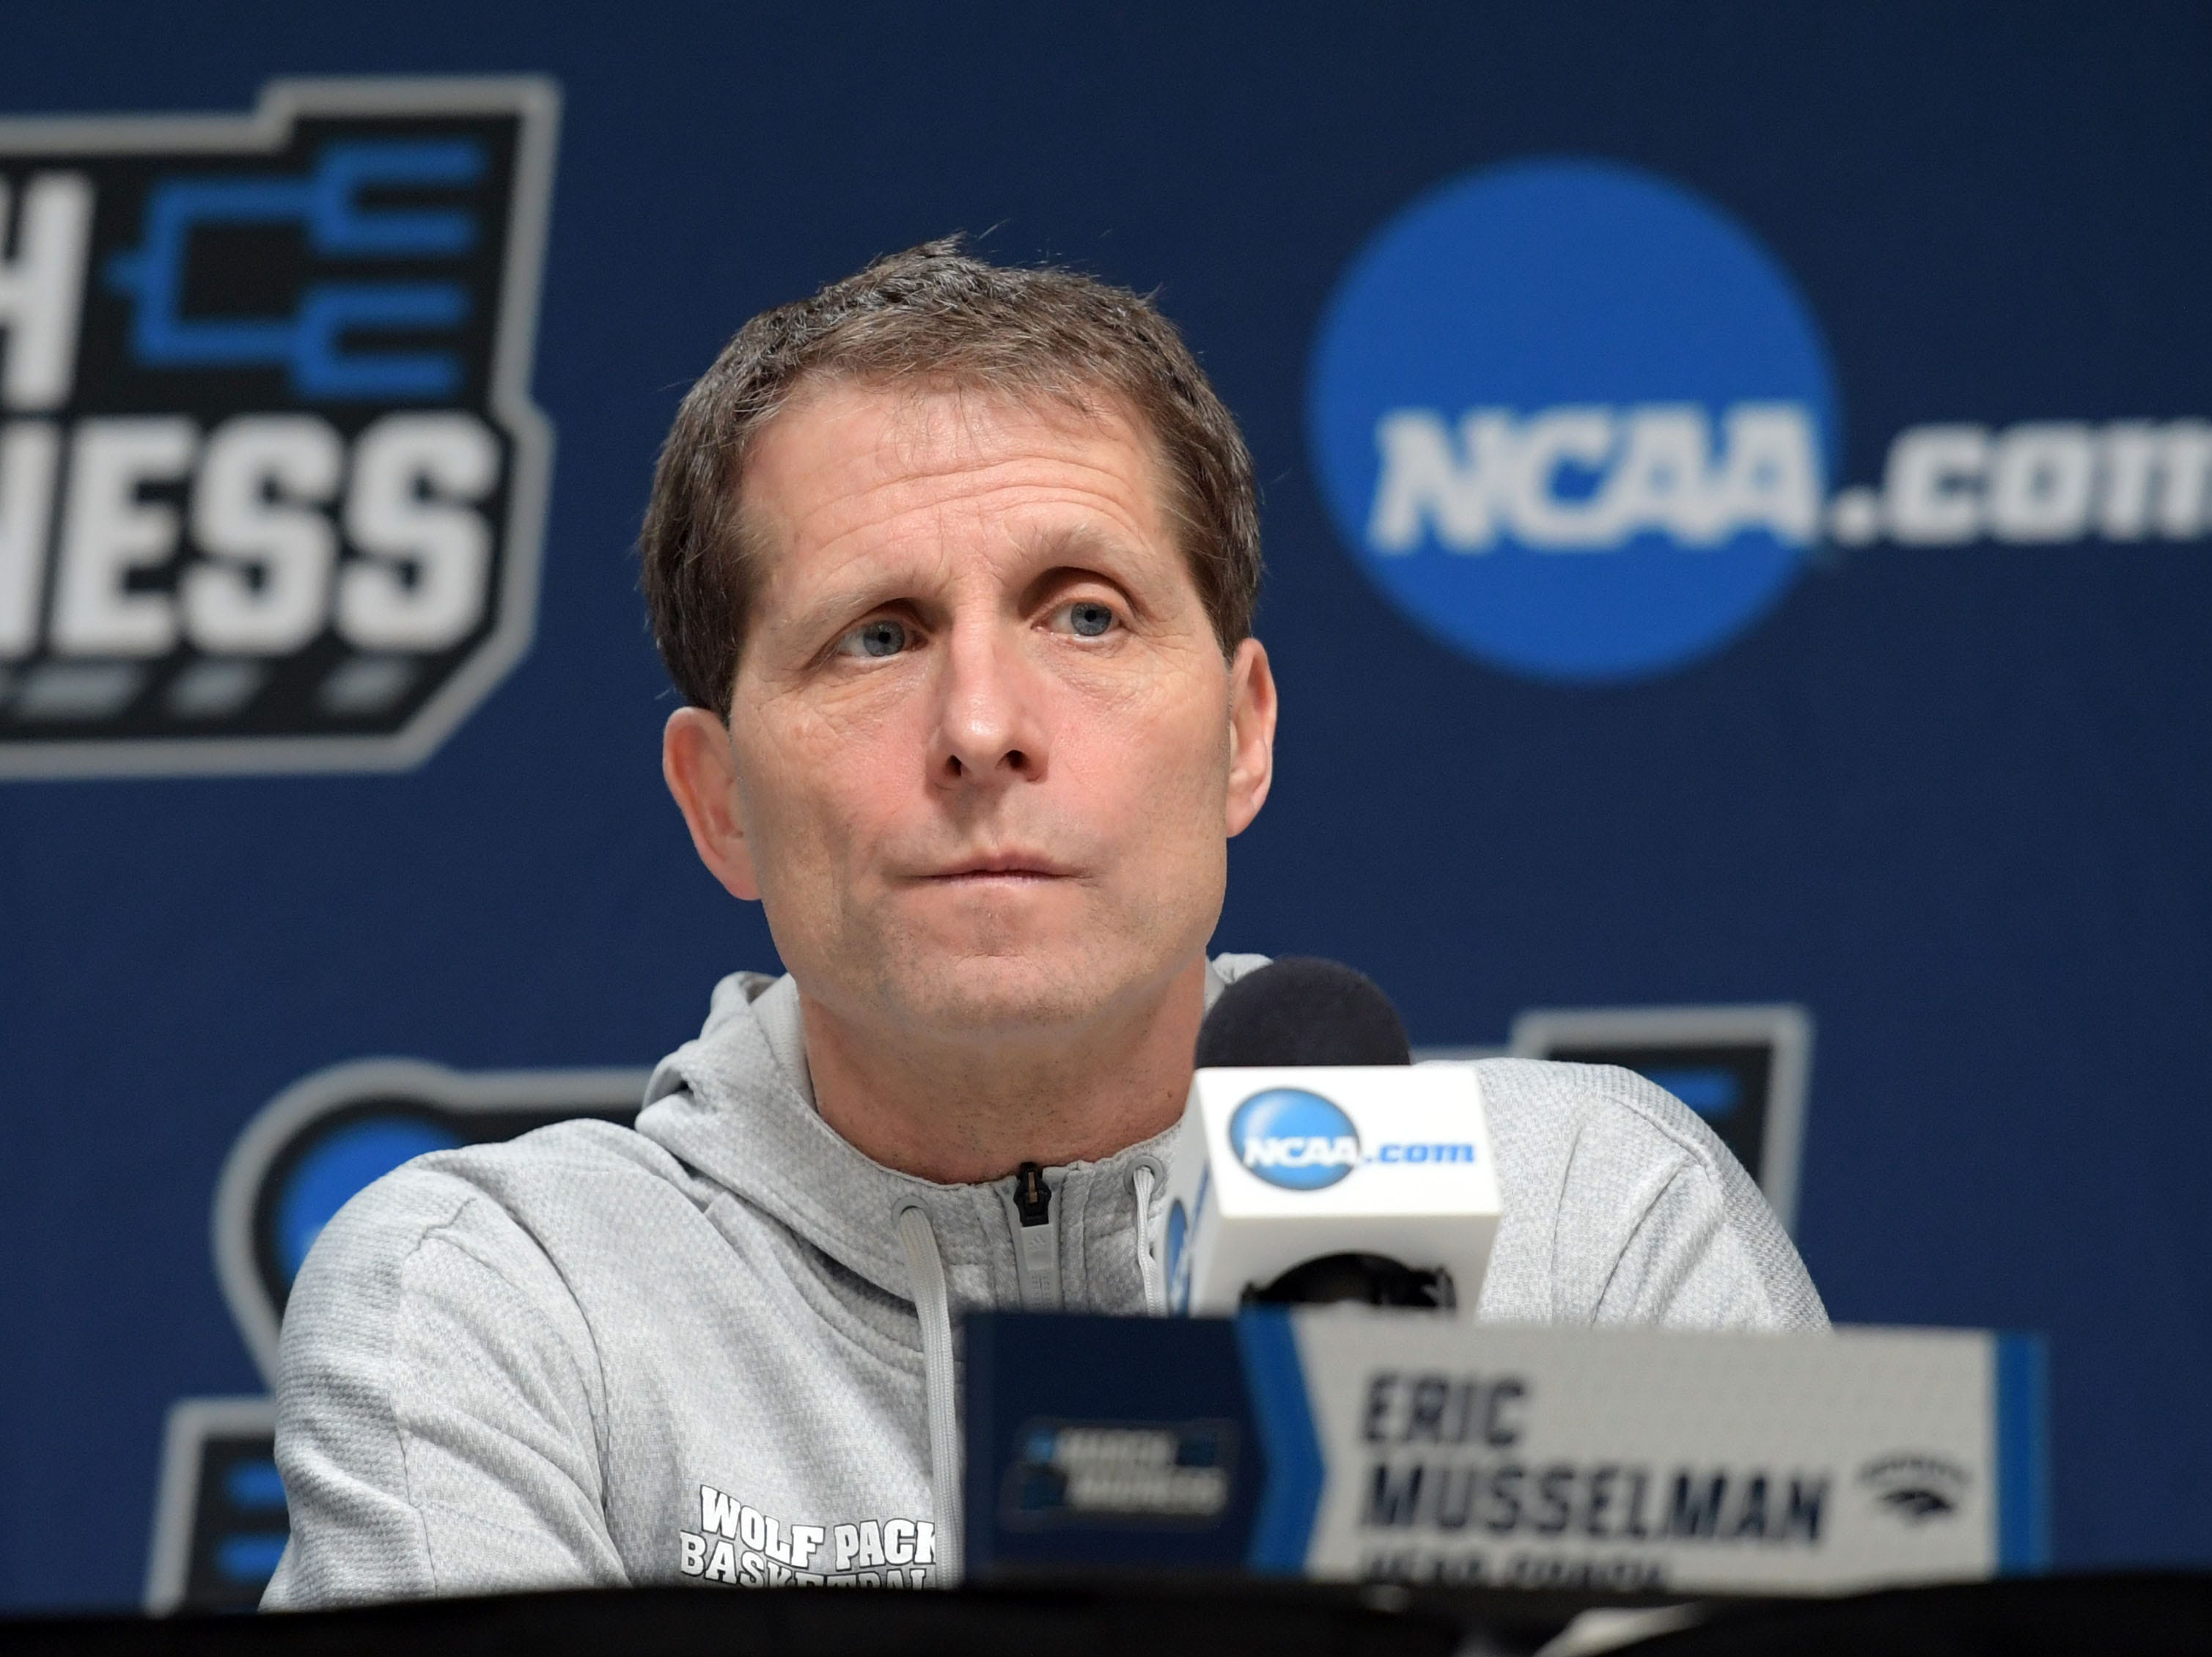 Mar 20, 2019; Des Moines, IA, USA; Nevada Wolf Pack head coach Eric Musselman speaks during a press conference during practice before the first round of the 2019 NCAA Tournament at Wells Fargo Arena. Mandatory Credit: Steven Branscombe-USA TODAY Sports